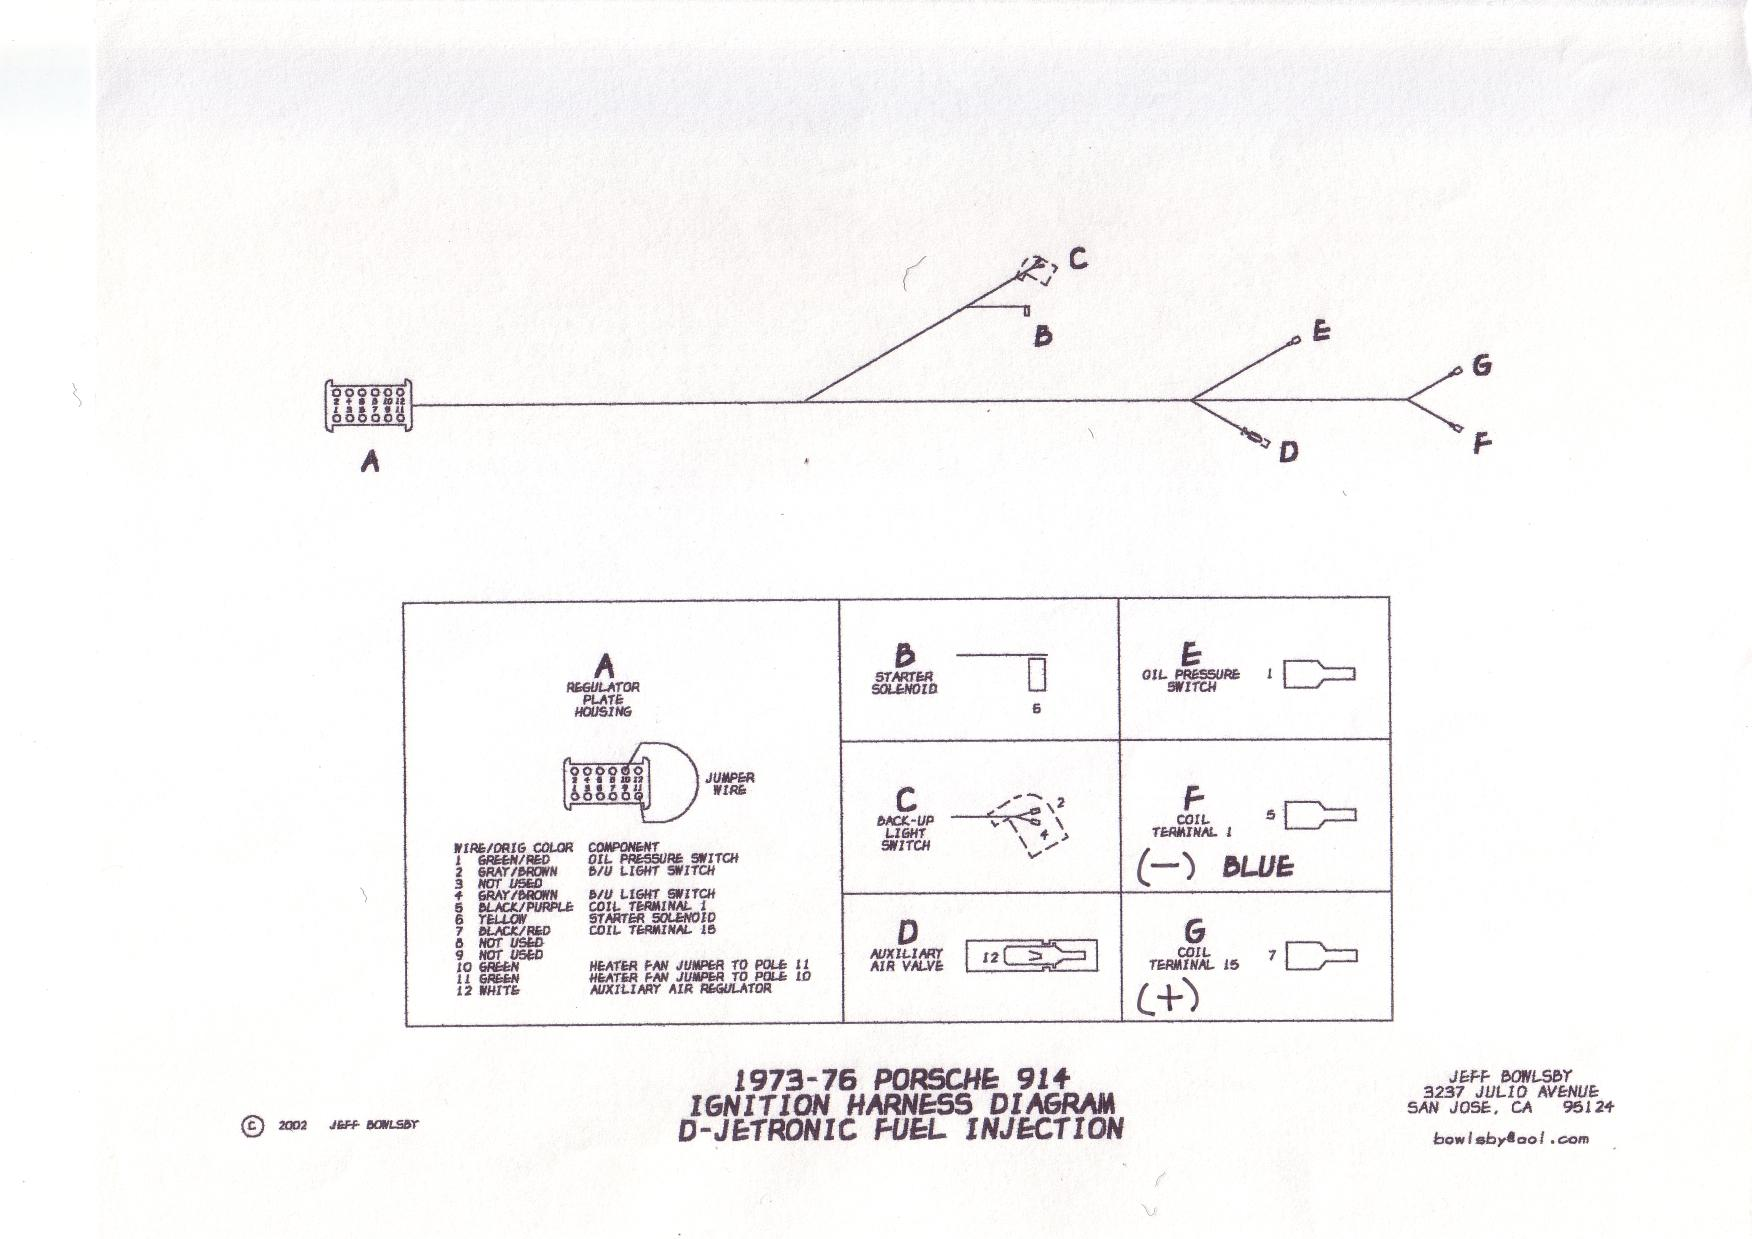 1971 porsche 914 wiring diagram single phase 230v motor is and vw 39s efi the same shoptalkforums